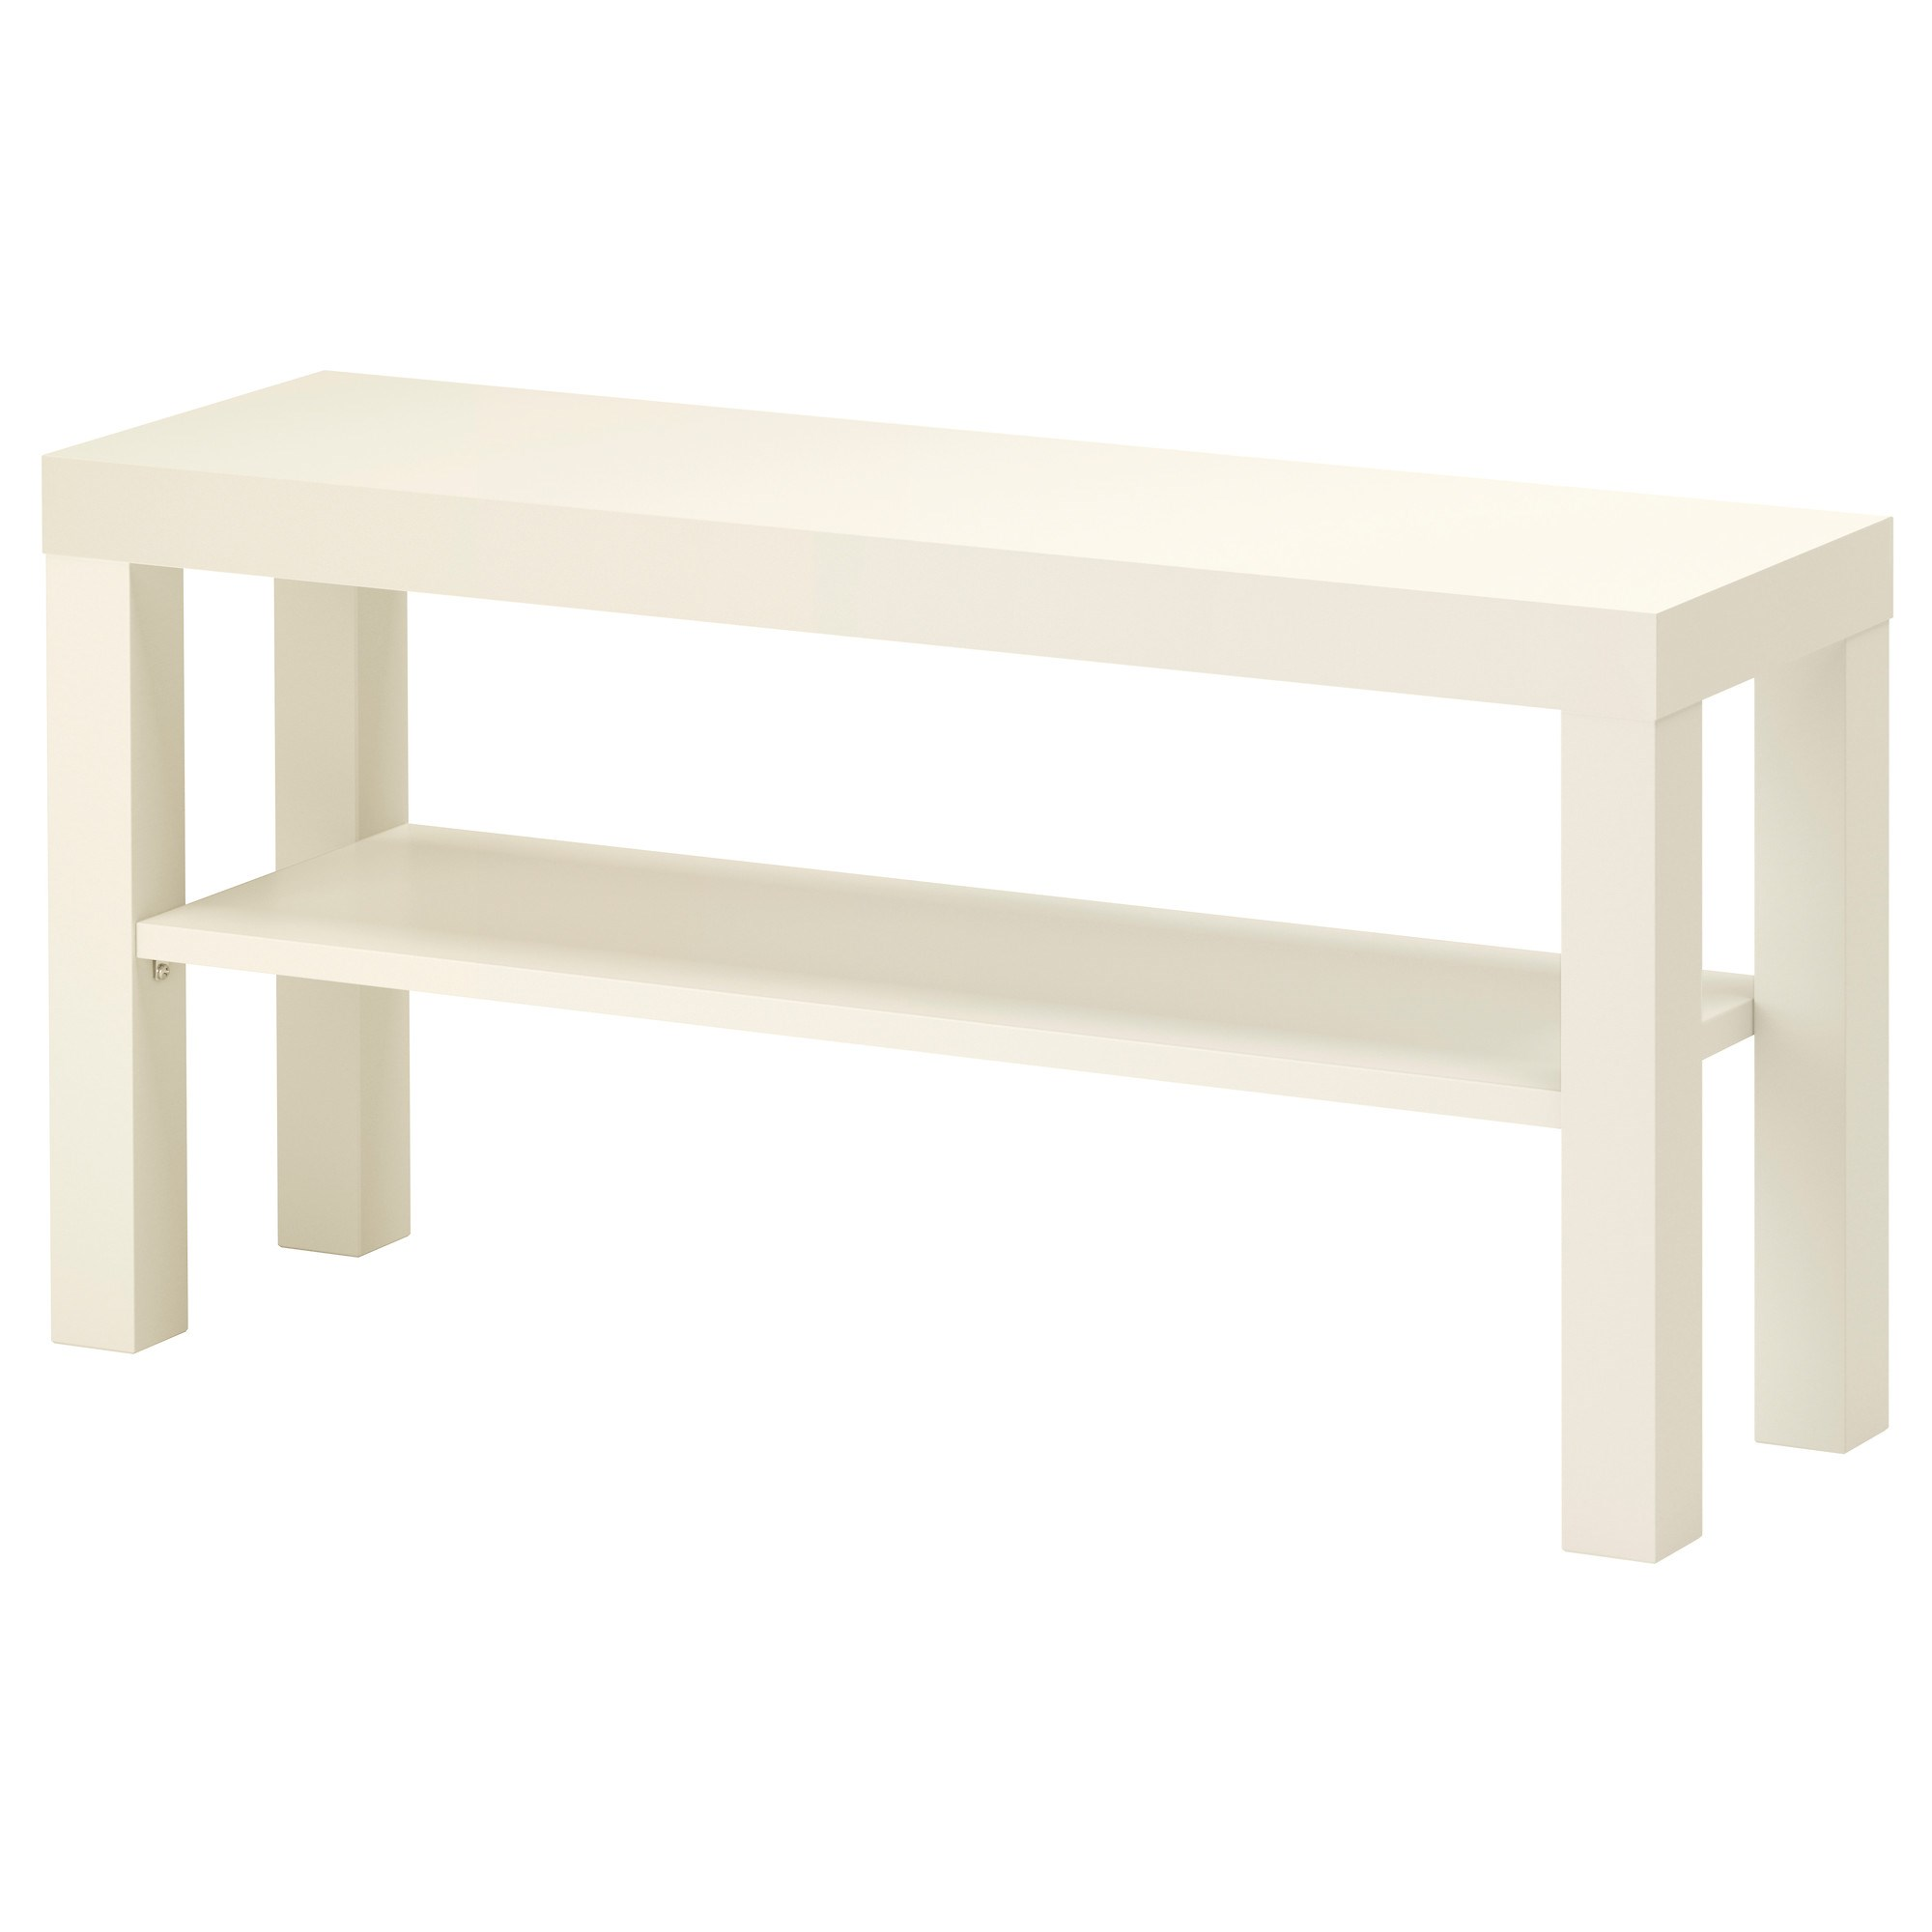 Ikea Banc Lack Tv Bench White 90x26x45 Cm Ikea Discount Products